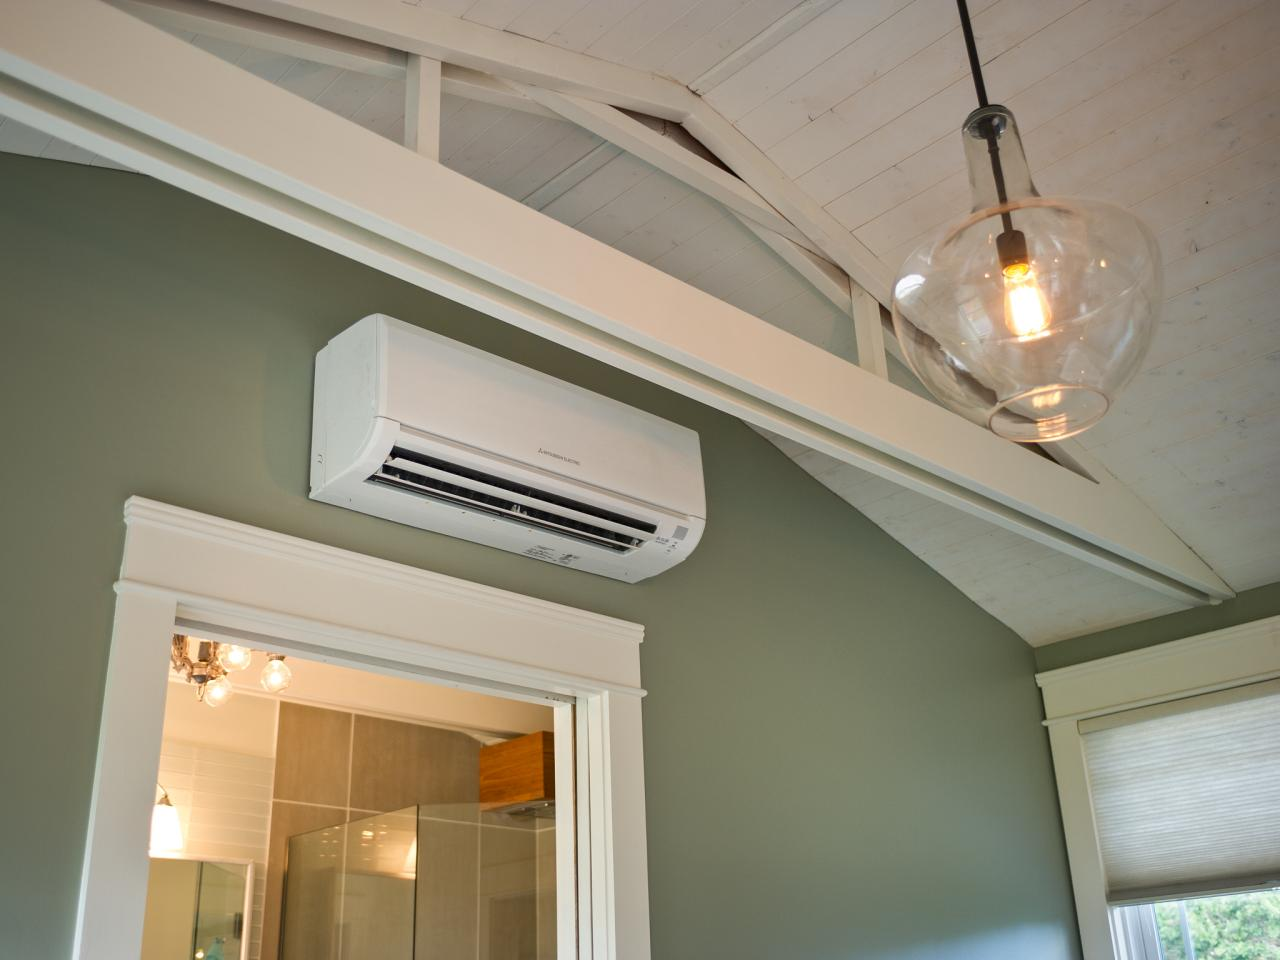 The Pros And Cons Of A Ductless Heating And Cooling System